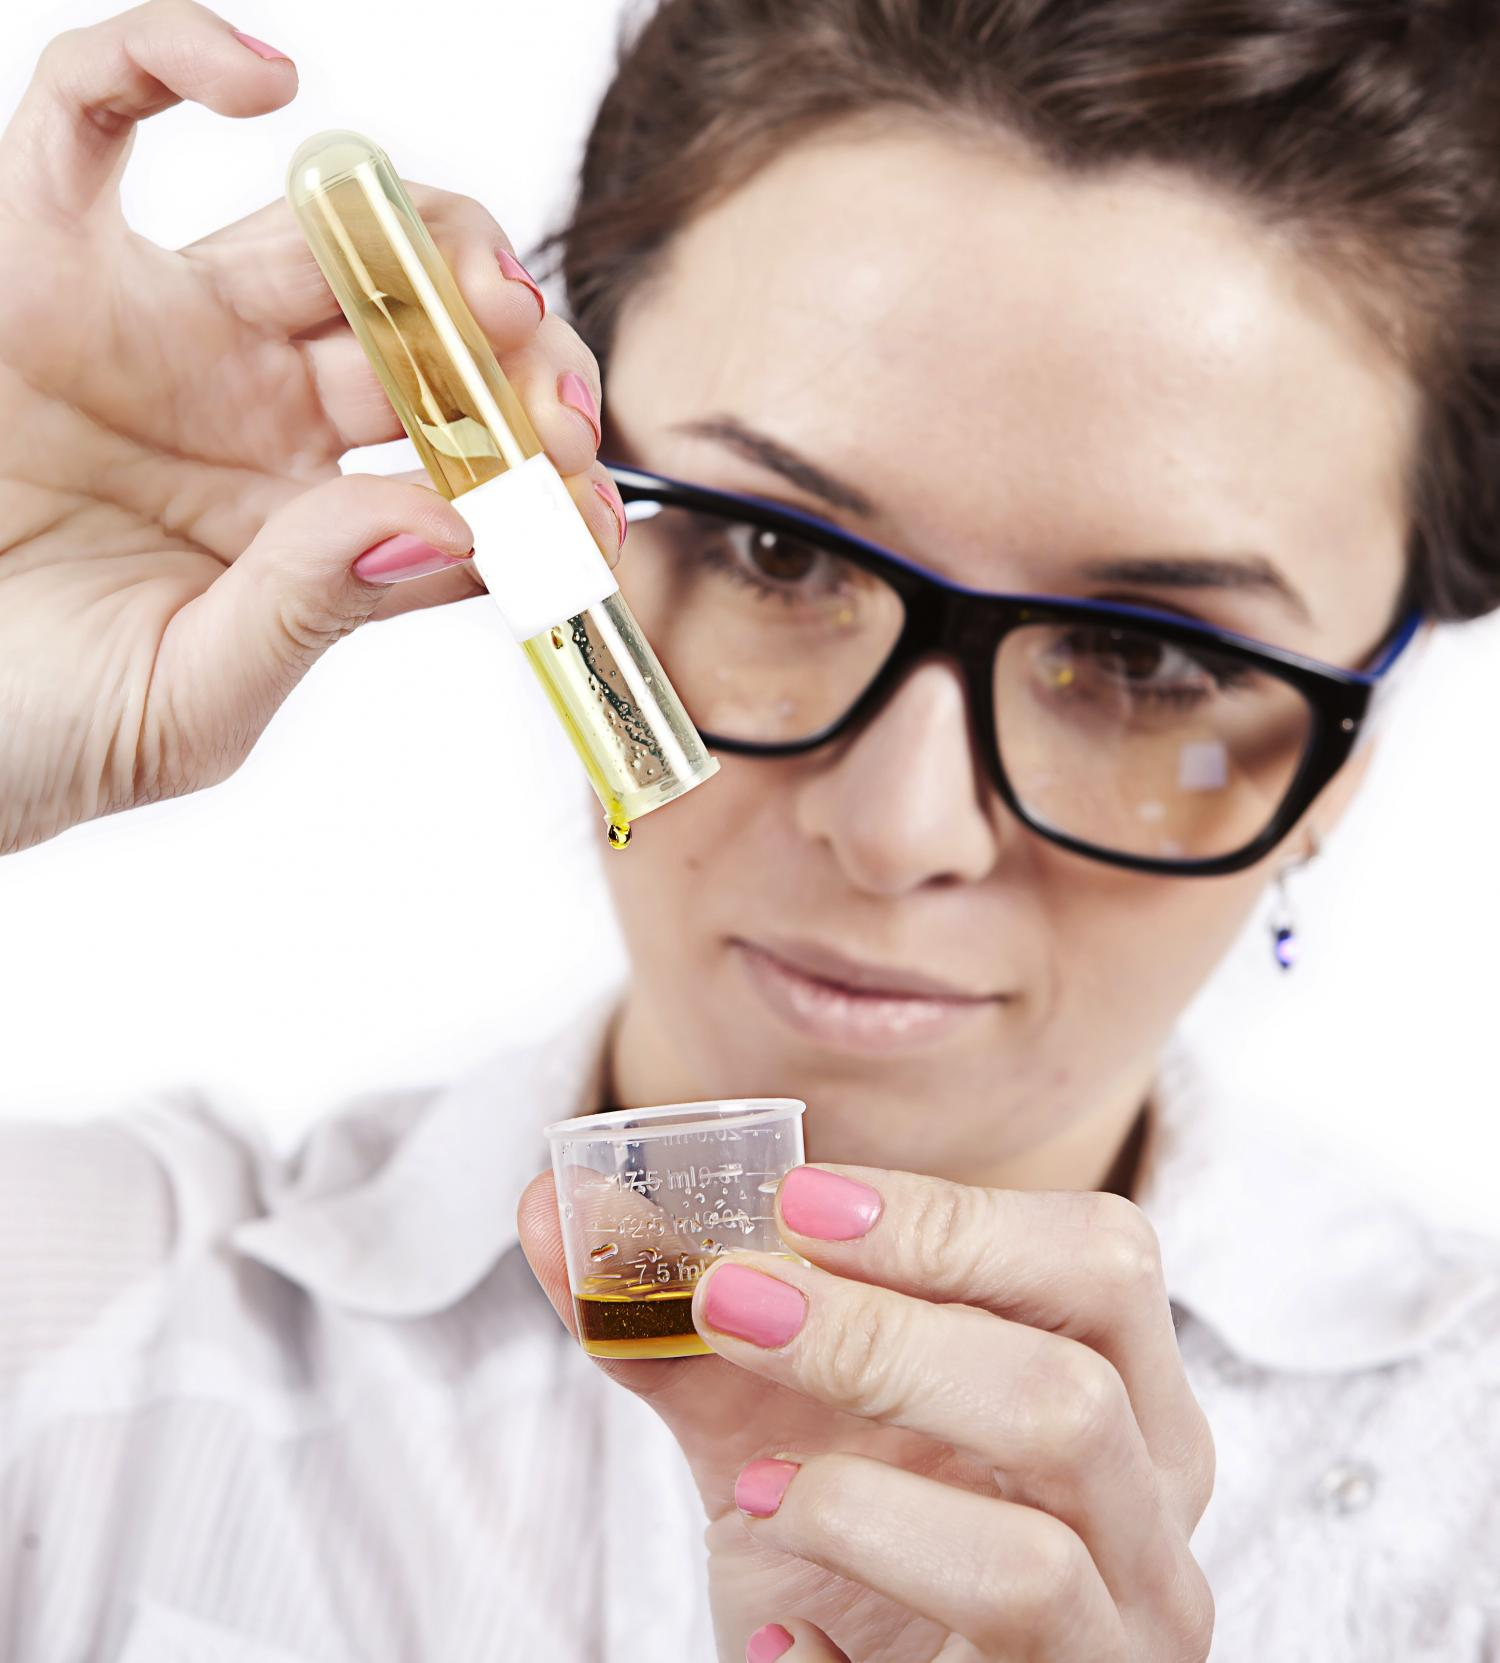 Cosmetics Chemistry: Beauty Ingredients And Their Purposes